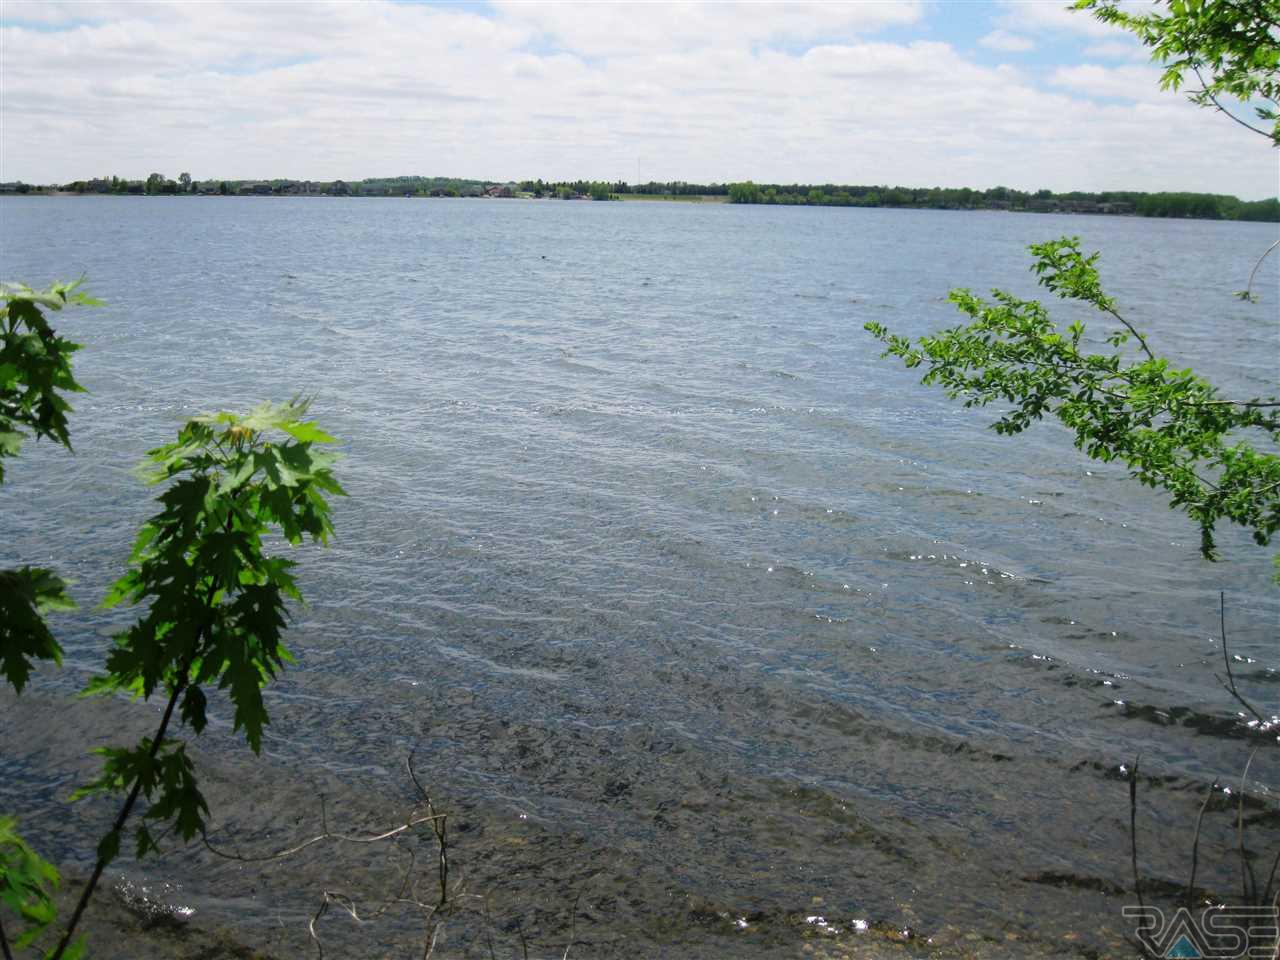 MOTIVATED SELLERS -- HUGE price reduction on this 12 acre parcel with TERRIFIC LAKE FRONTAGE and channel that winds through property.  One of the last undeveloped properties on Lake Madison and POSSIBILITIES ARE ENDLESS!! This parcel stretches from Hwy. 34, passed Dakota Avenue and to the water's edge.  It has been platted for residential lots, but would be perfect for your dream home, family compound or for investor(s) wanting to build lake homes.   Inventory is low, so could be a GREAT time for lake homes to be built.  Sewer and rural water are available and currently in place.